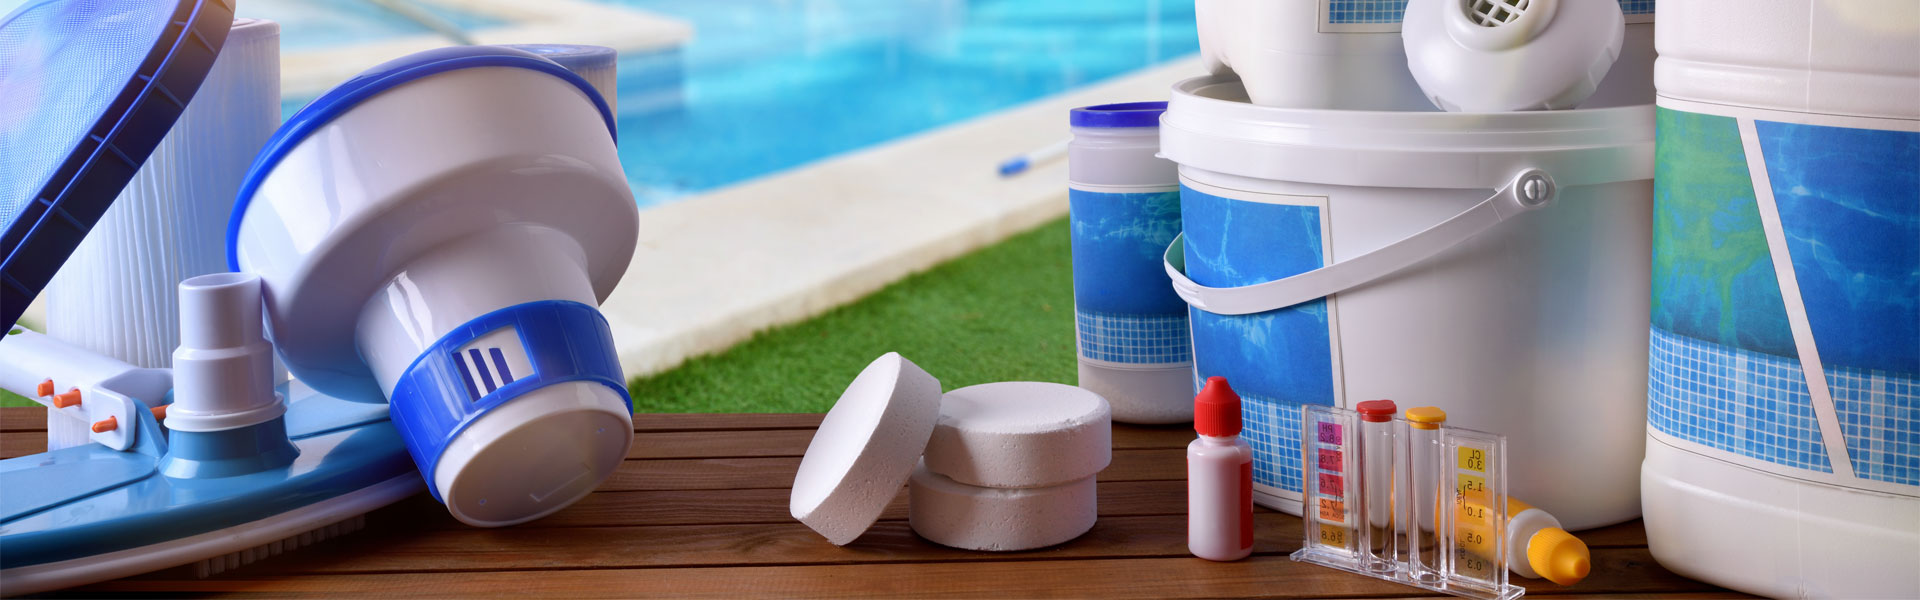 Swimming Pool Cleaning Supplies and Equipment